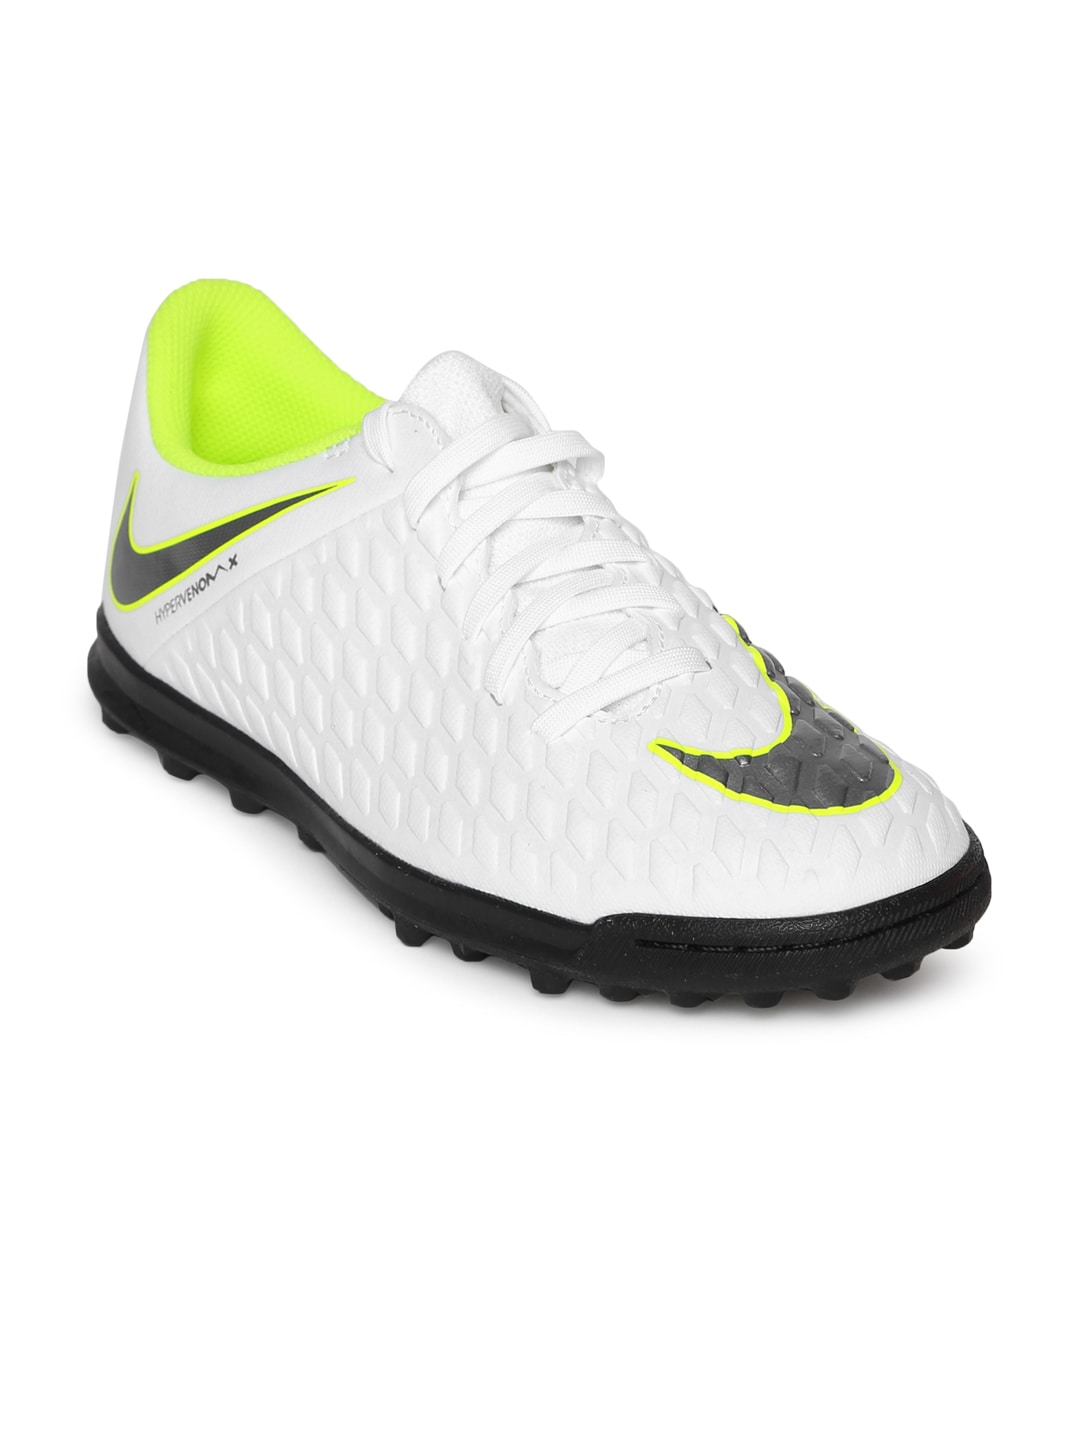 timeless design 338c0 6a9d5 Nike Shoes - Buy Nike Shoes for Men, Women   Kids Online   Myntra